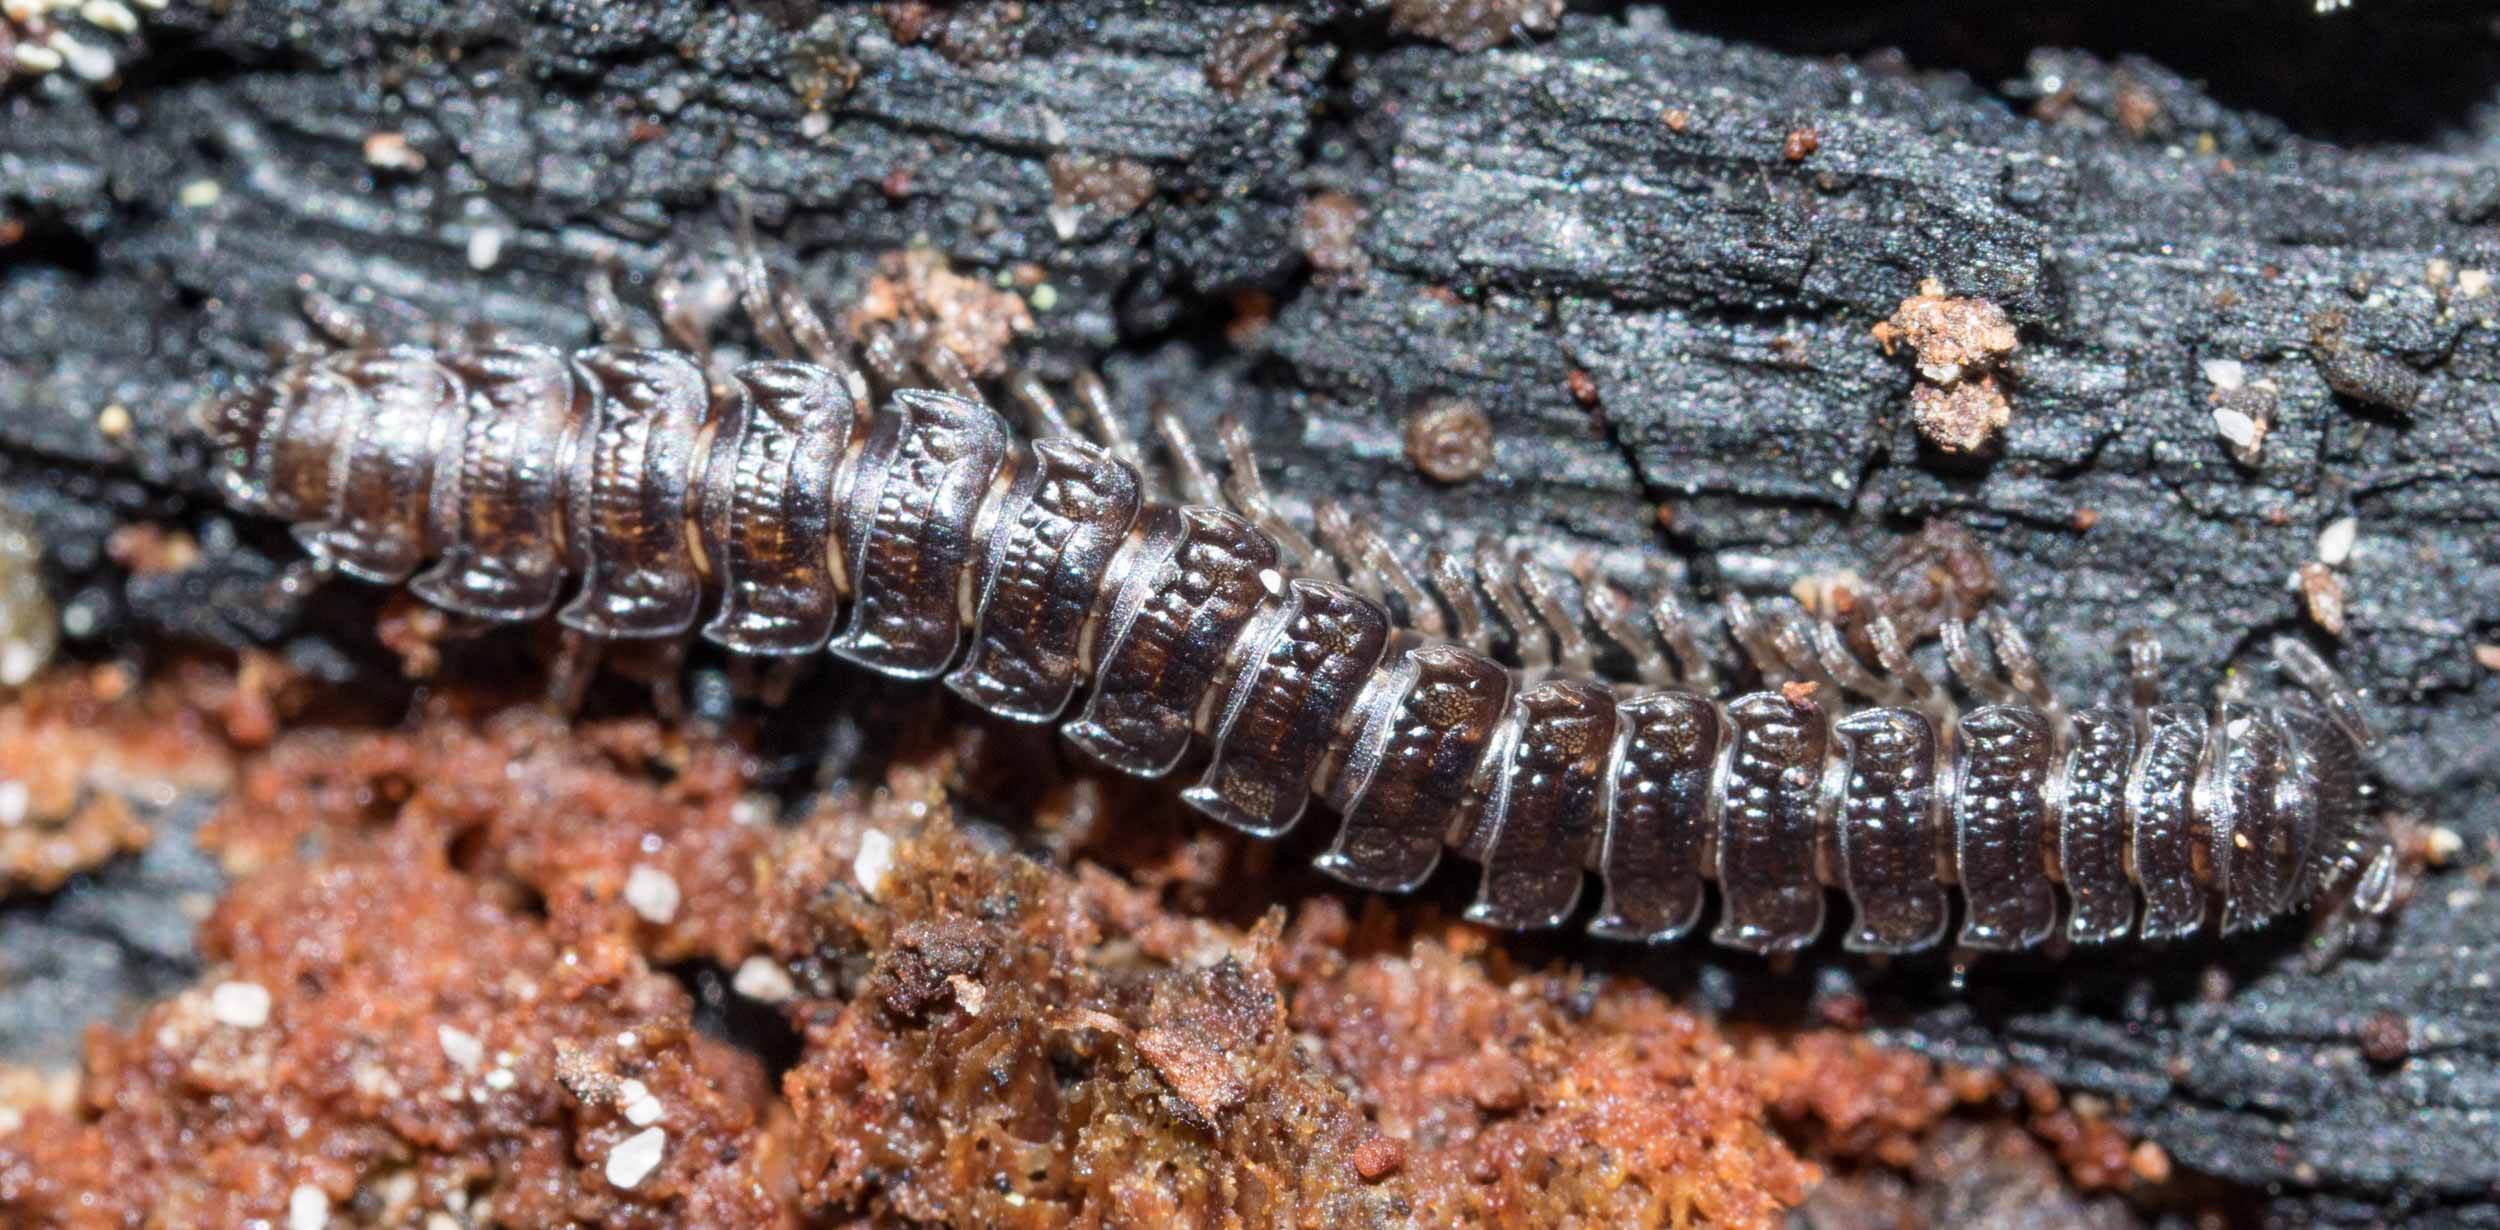 This millipede (Family Paradoxosomatidae) was overwintering under the bark of the log.